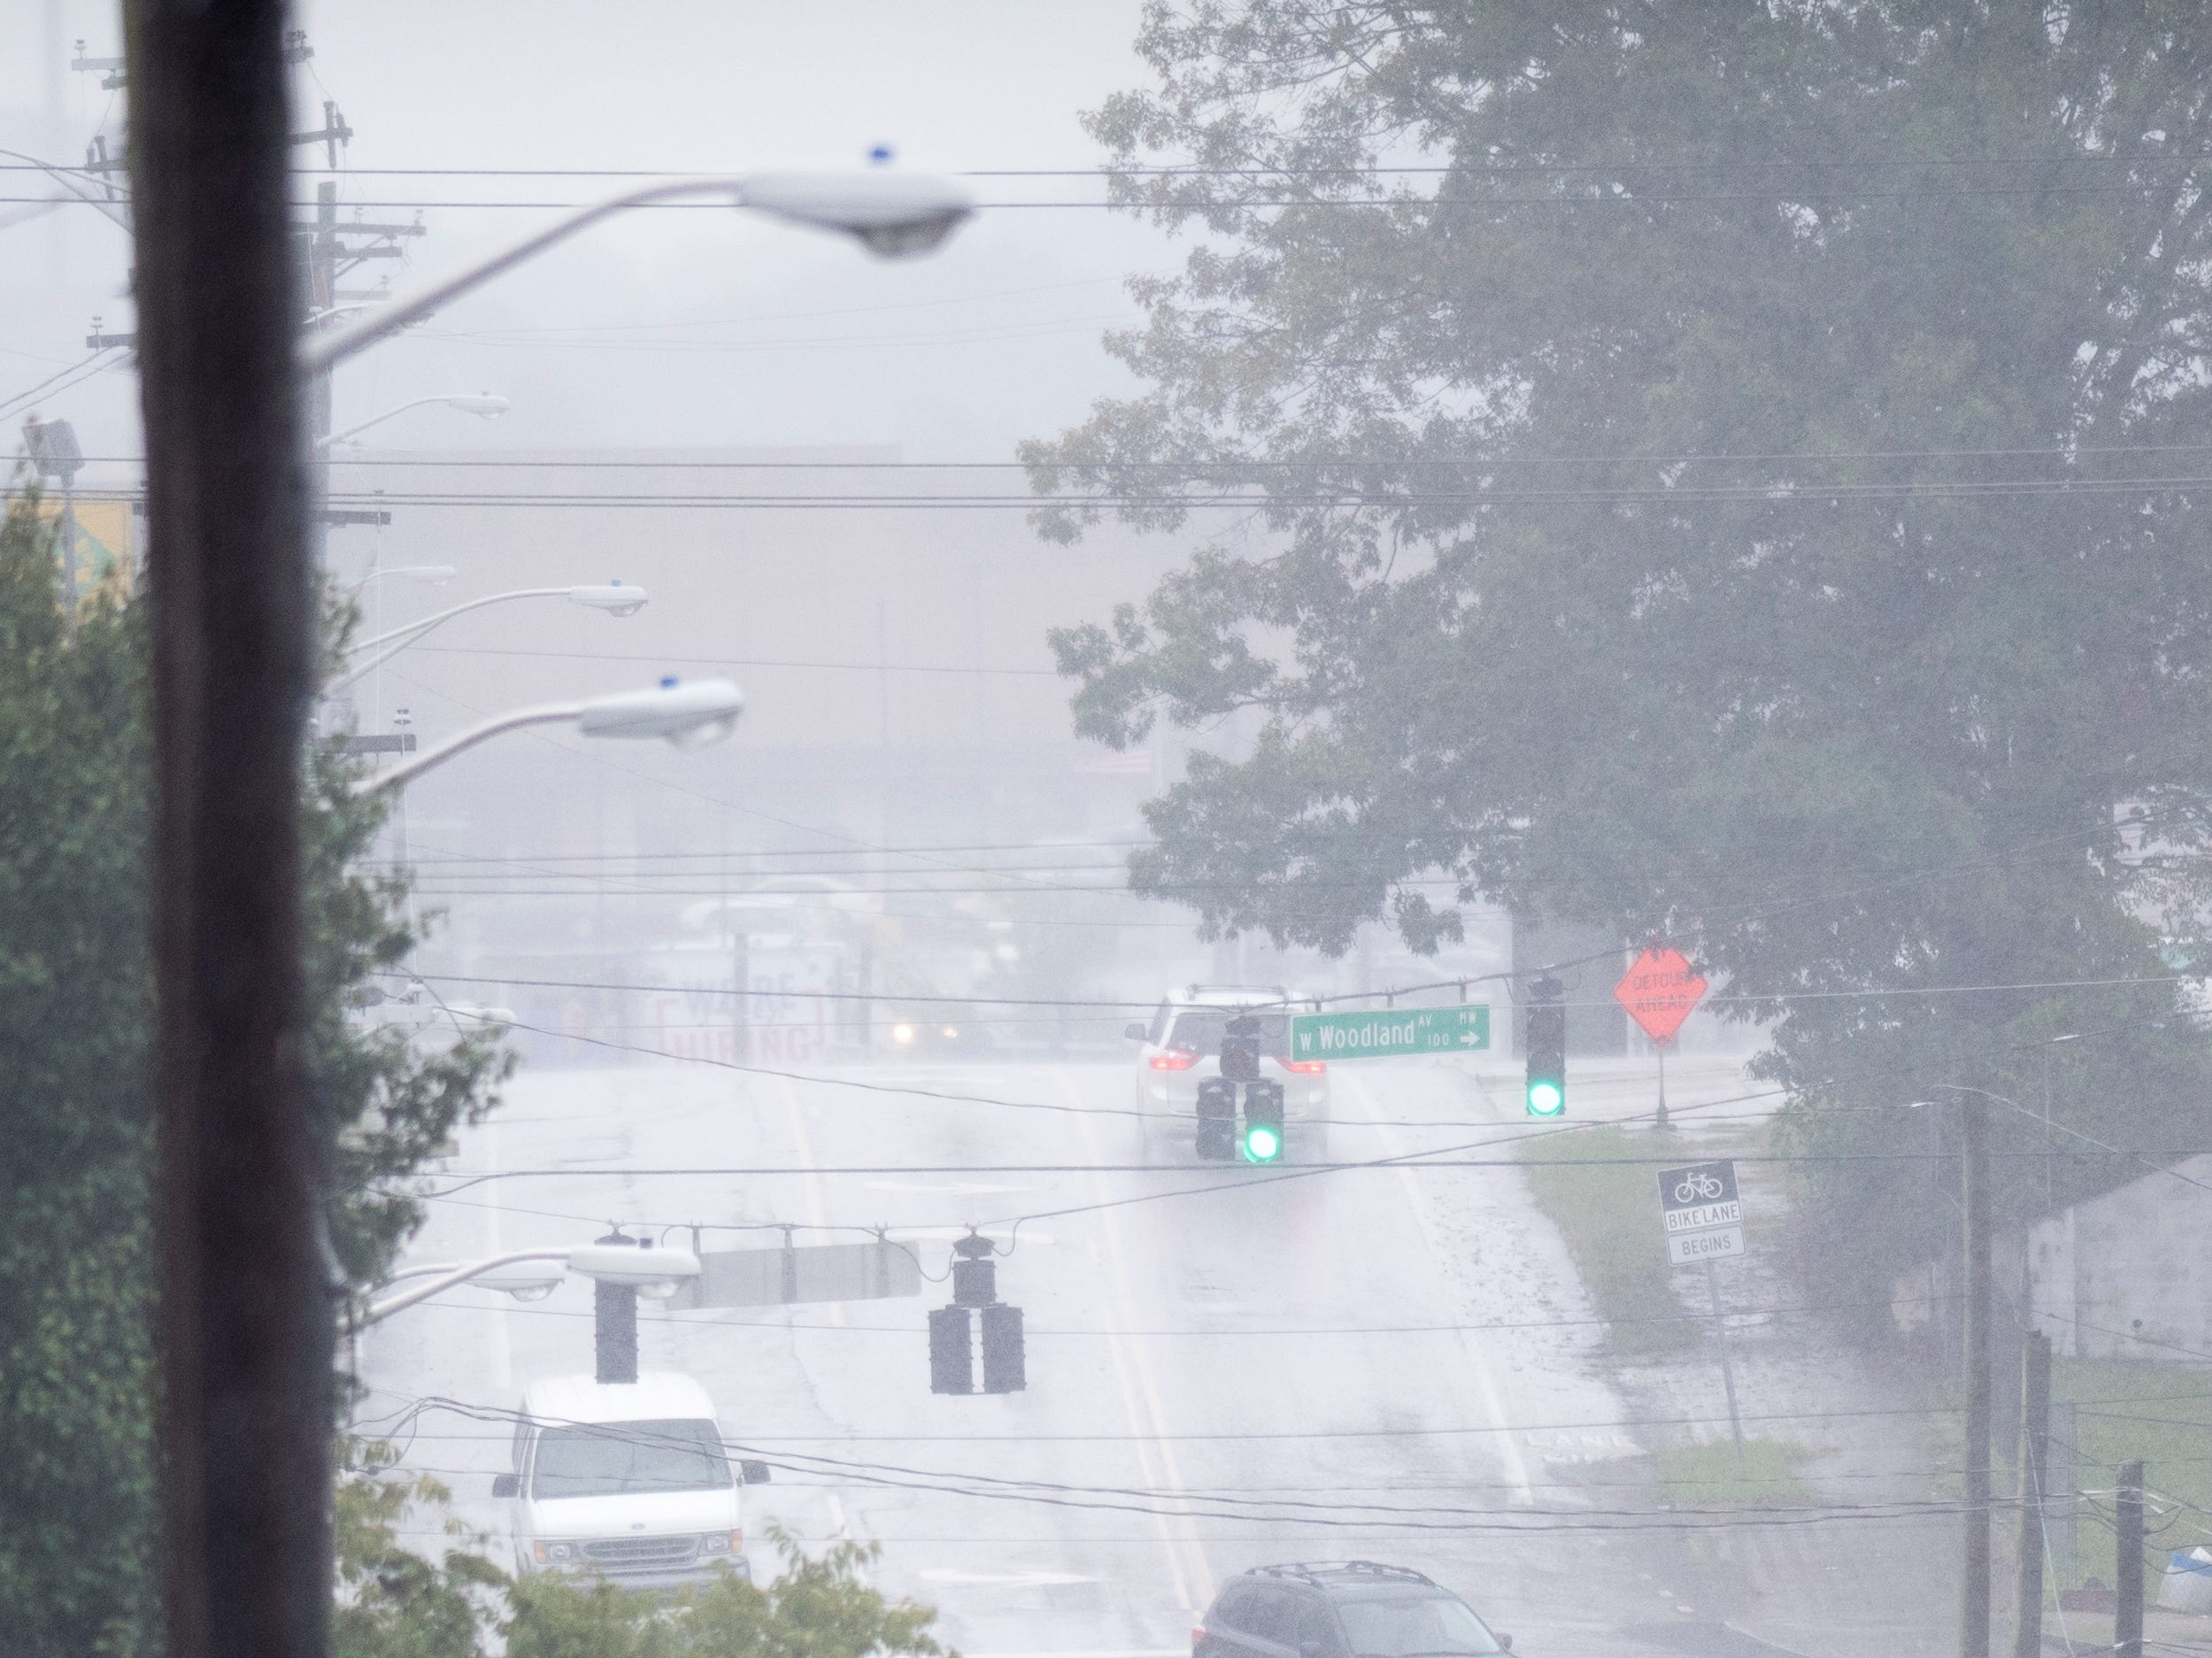 Heavy rains obscures Central Avenue during an afternoon rain shower in Knoxville, Tennessee on Wednesday, September 26, 2018. A flood watch for the area was issued around 1pm until 7pm.